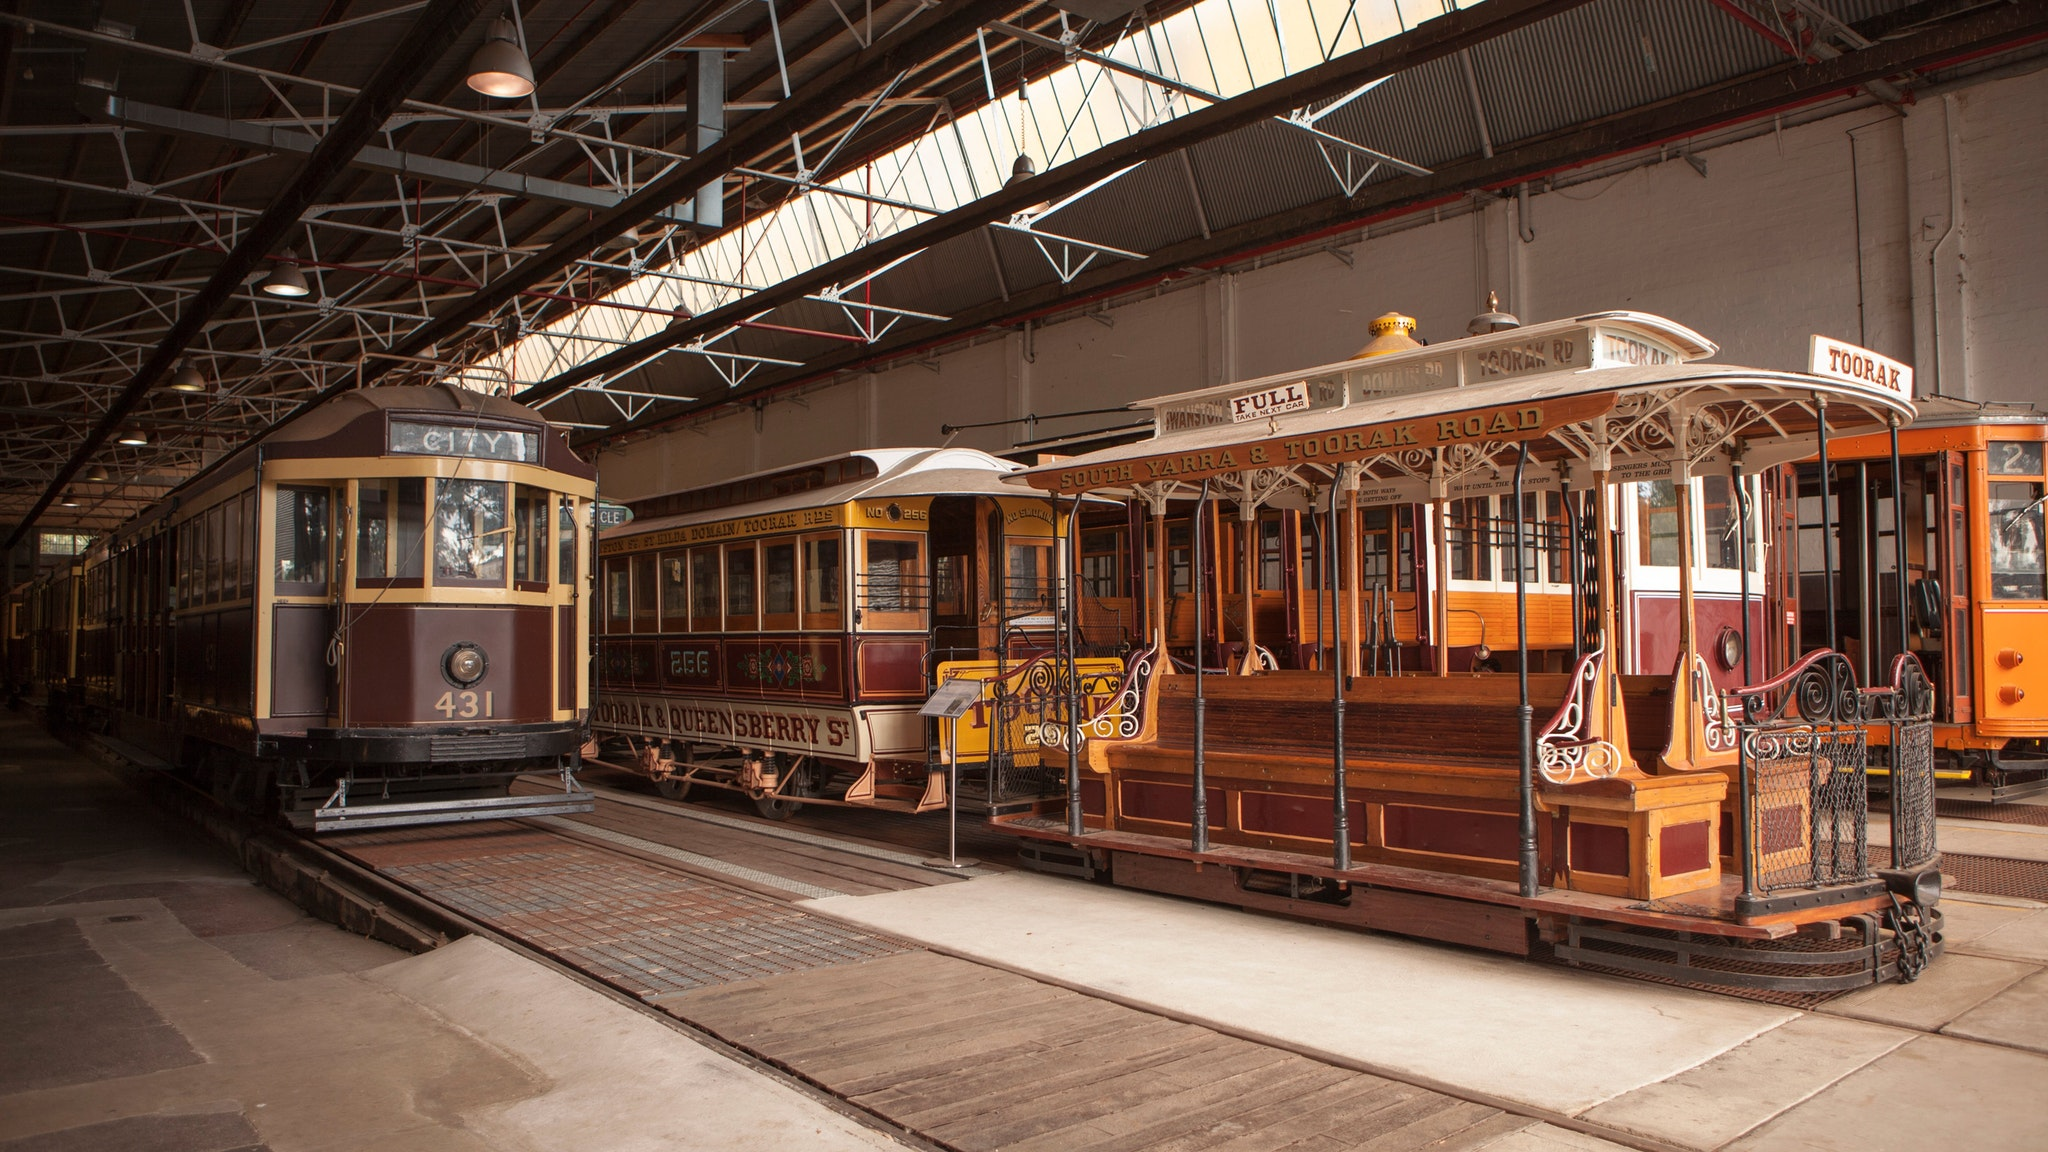 Photographs of vintage Melbourne Tramcars